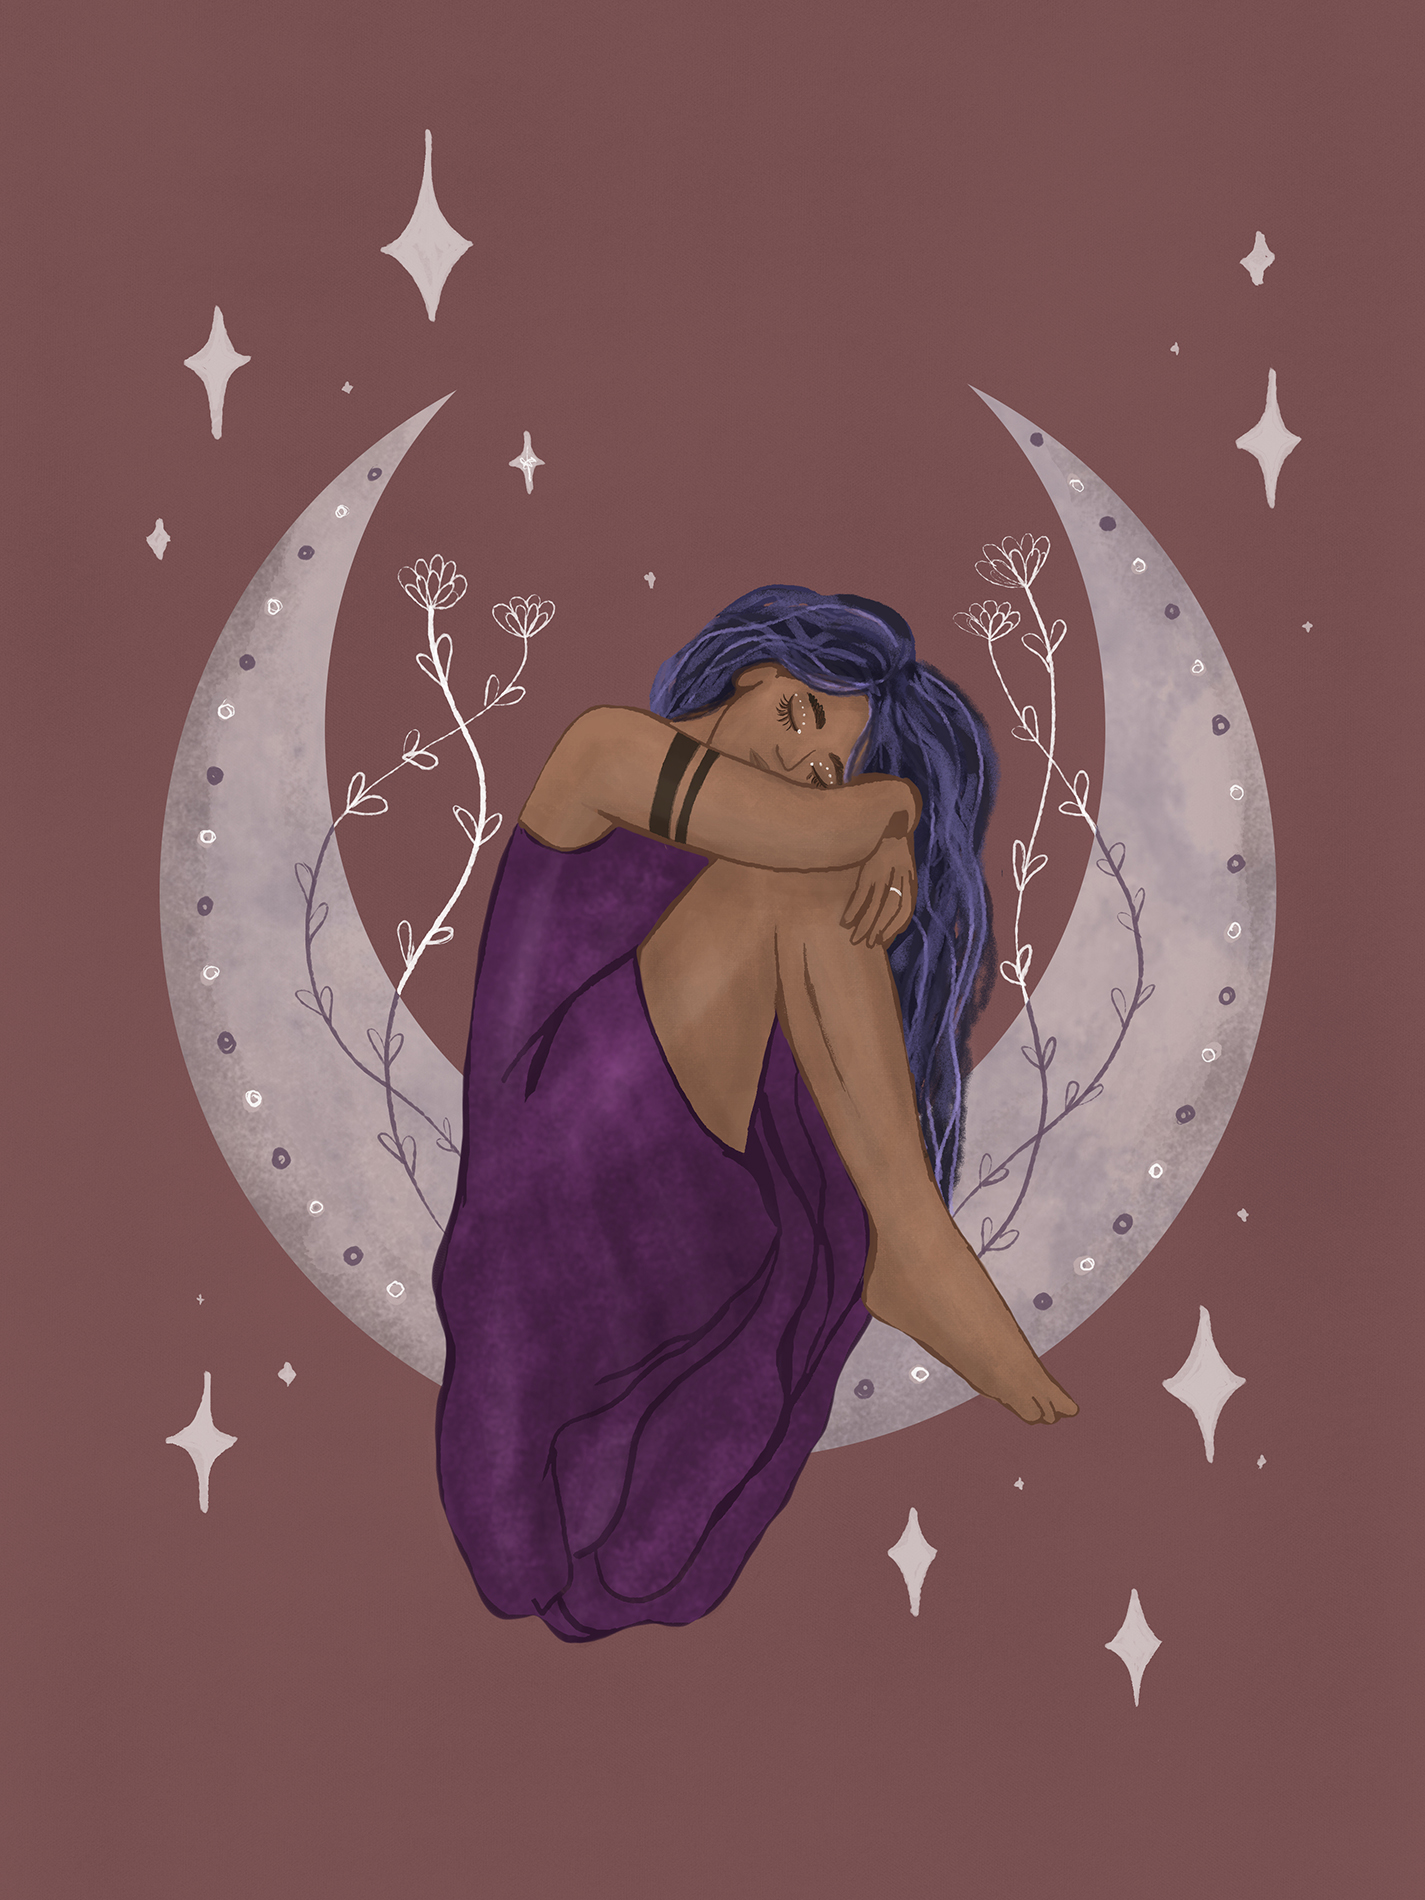 Spiritual illustration of a woman in a purple dress sitting in a moon.